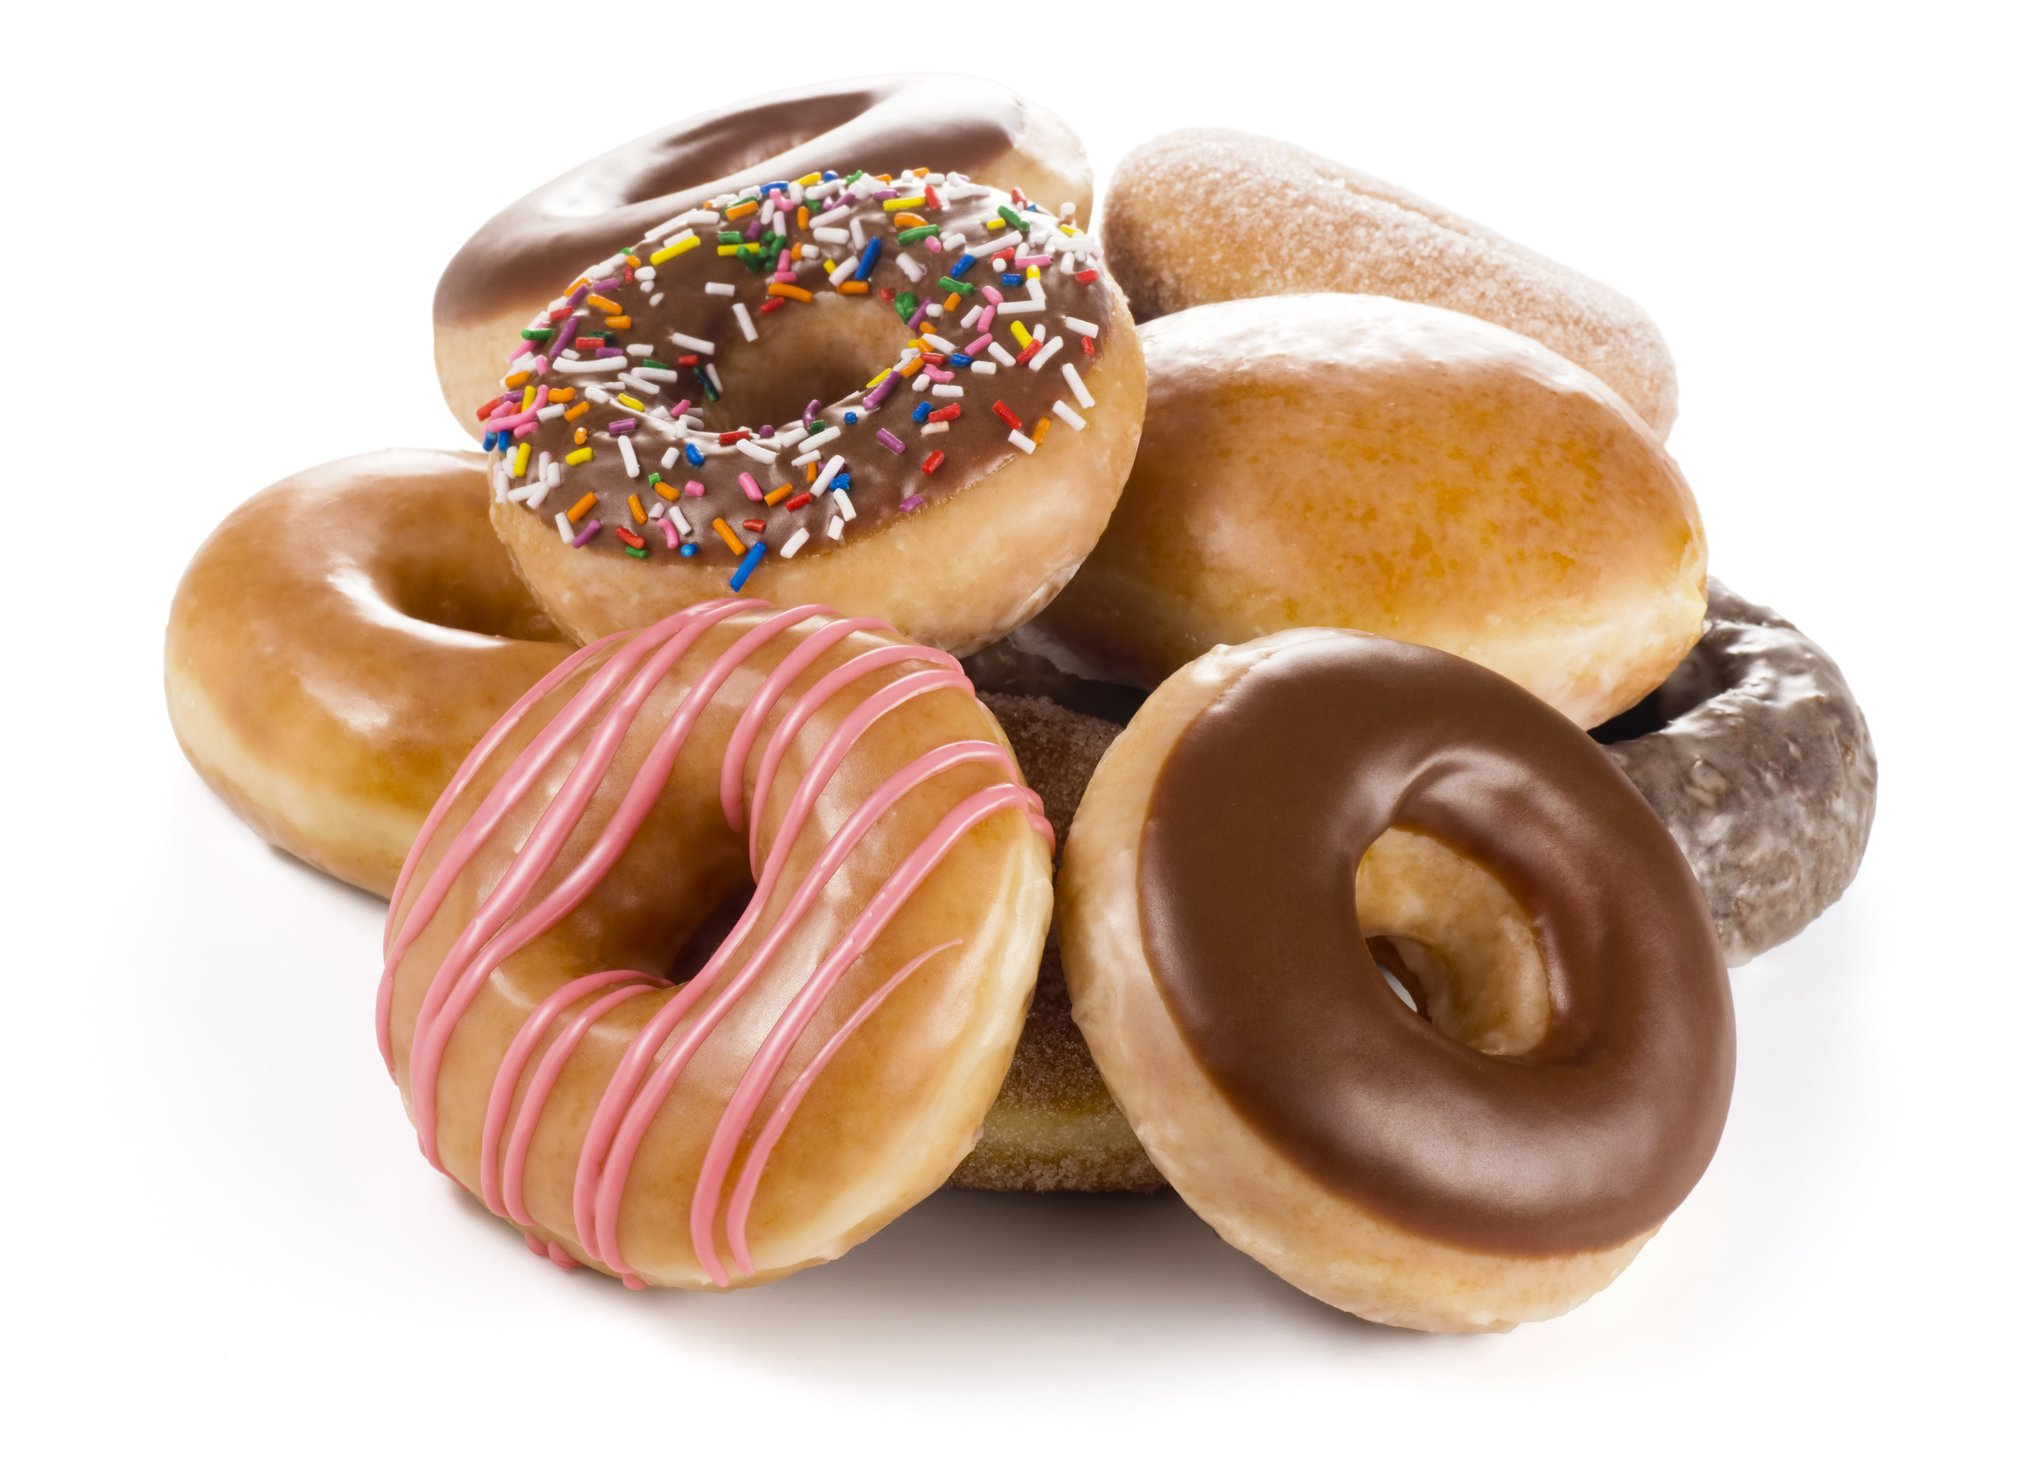 Close-Up Of Donuts Against White Background   Photo: Getty Images